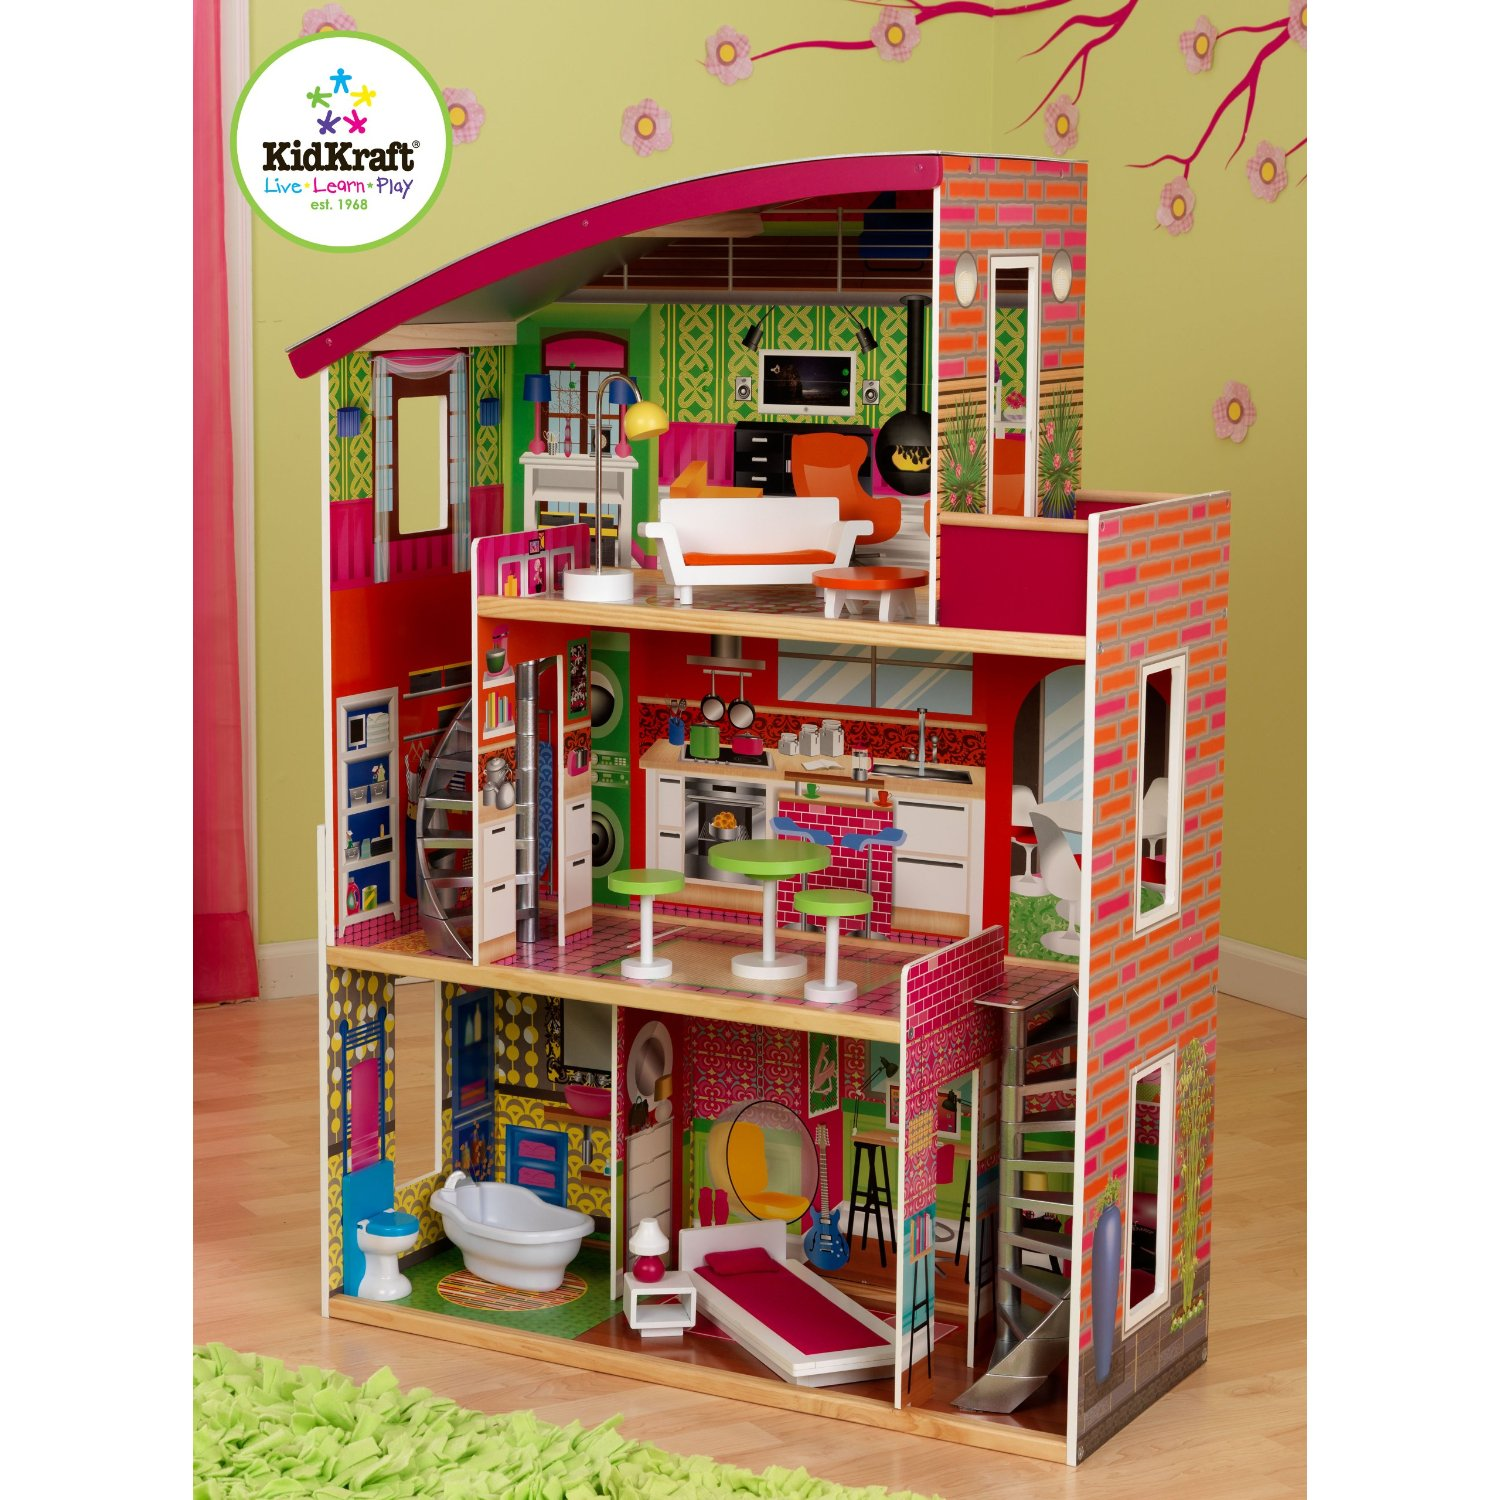 Kidkraft Designer Doll House With Furniture 109 Shipped Was 164